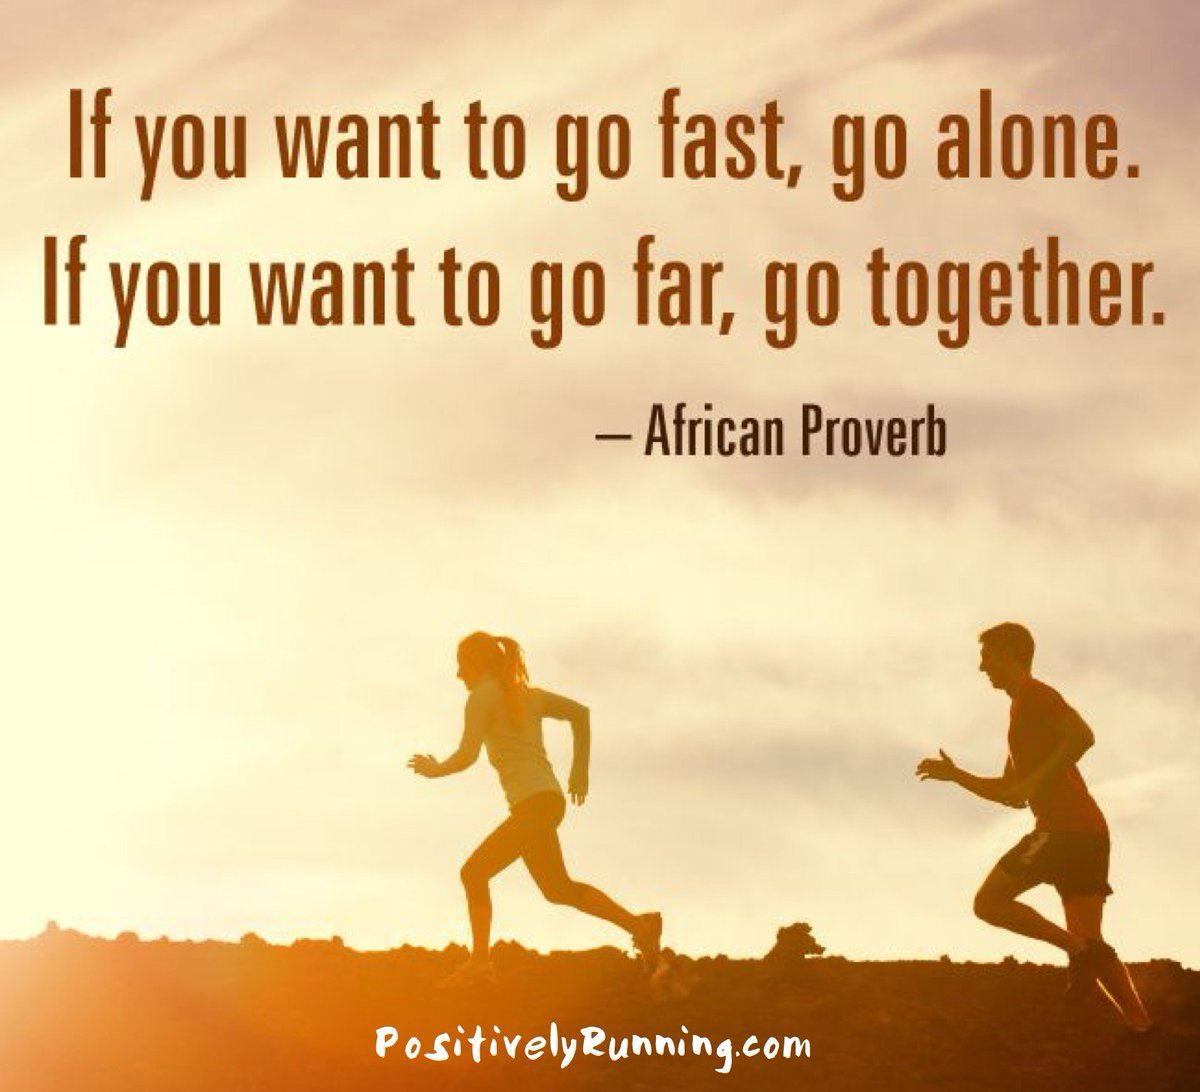 If you want to go fast go alone. If you want to go far go together. - African Proverb via QuotesPorn on January 23 2019 at Sayings, African, Proverbs, Girls Be Like, Words, Motivation, Motivation Inspiration, African Proverb, Wisdom